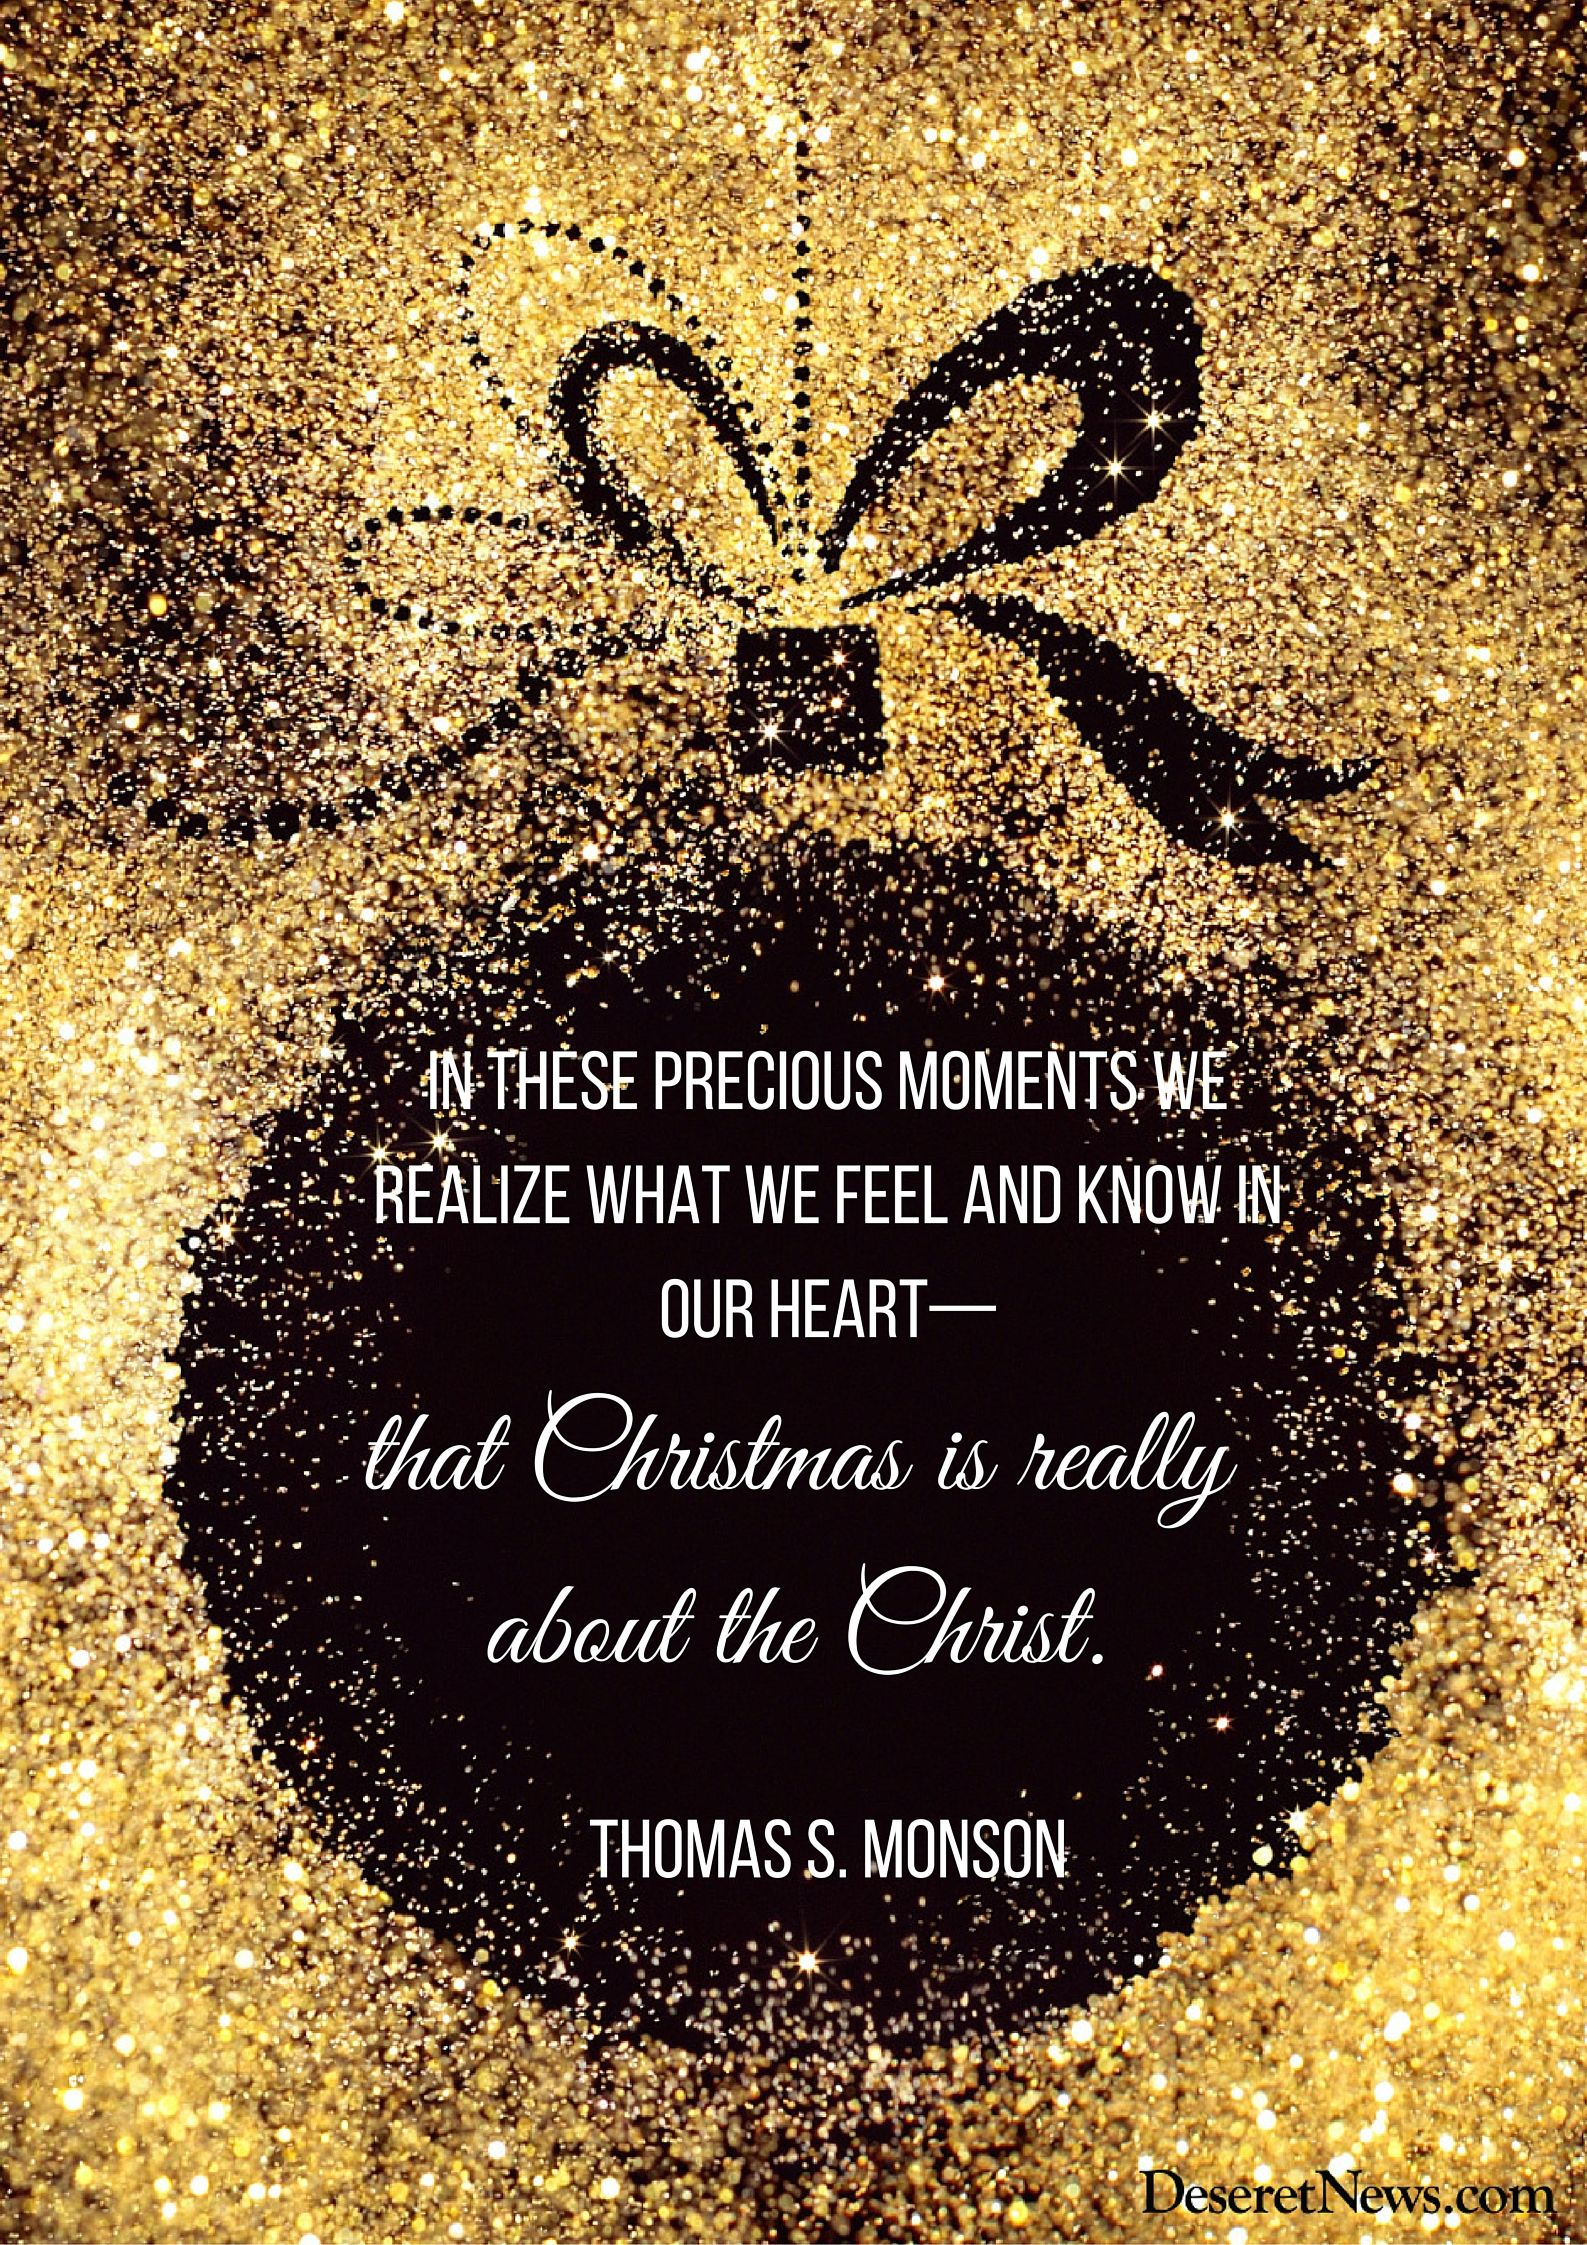 Lds Christmas Quotes.President Thomas S Monson In These Precious Moments We